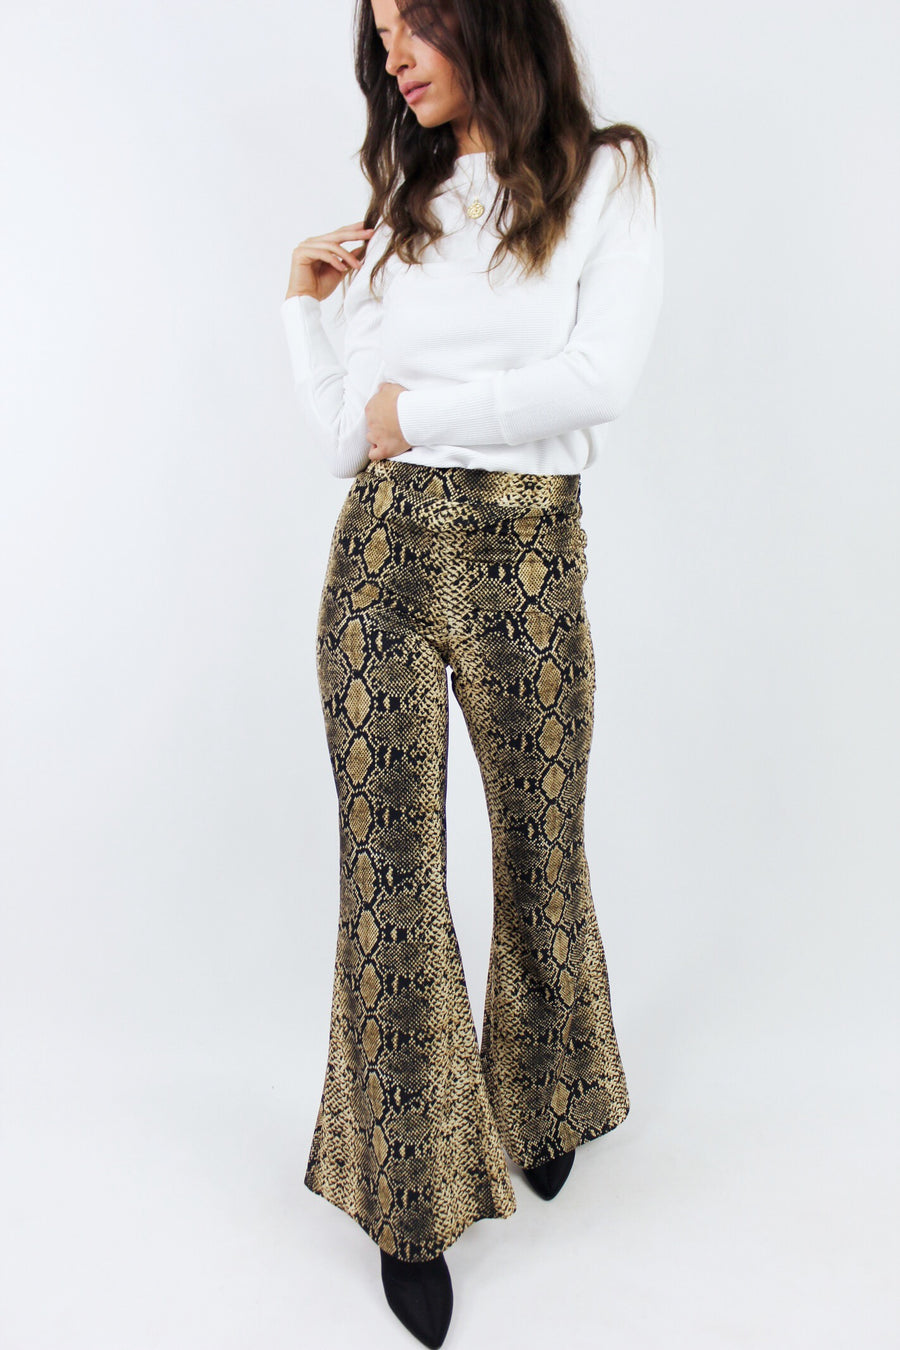 PYTHON PRINT FLARE PANTS - Halite Clothing